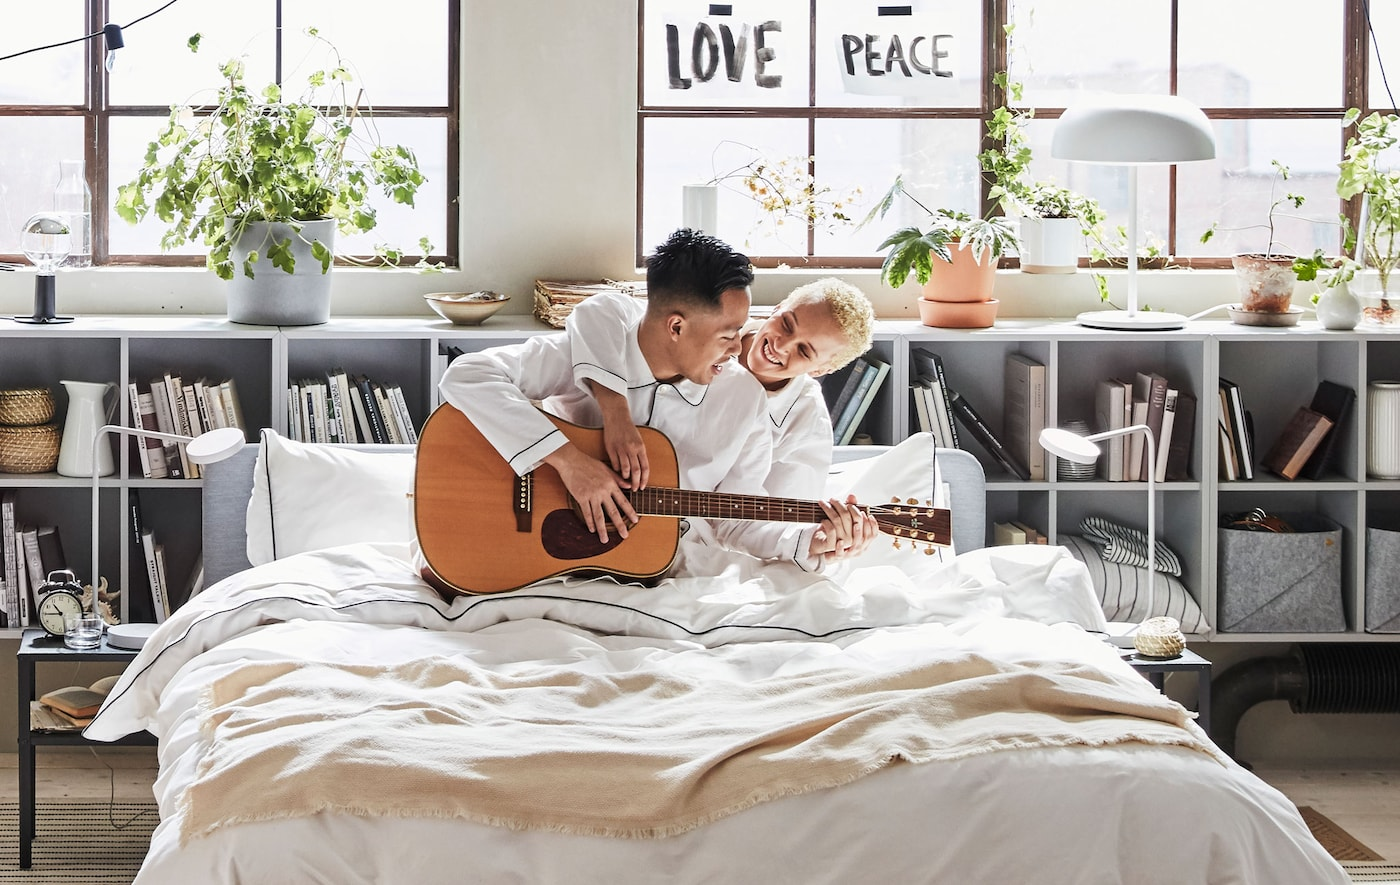 A couple in bed with a guitar in an industrial style loft bedroom.